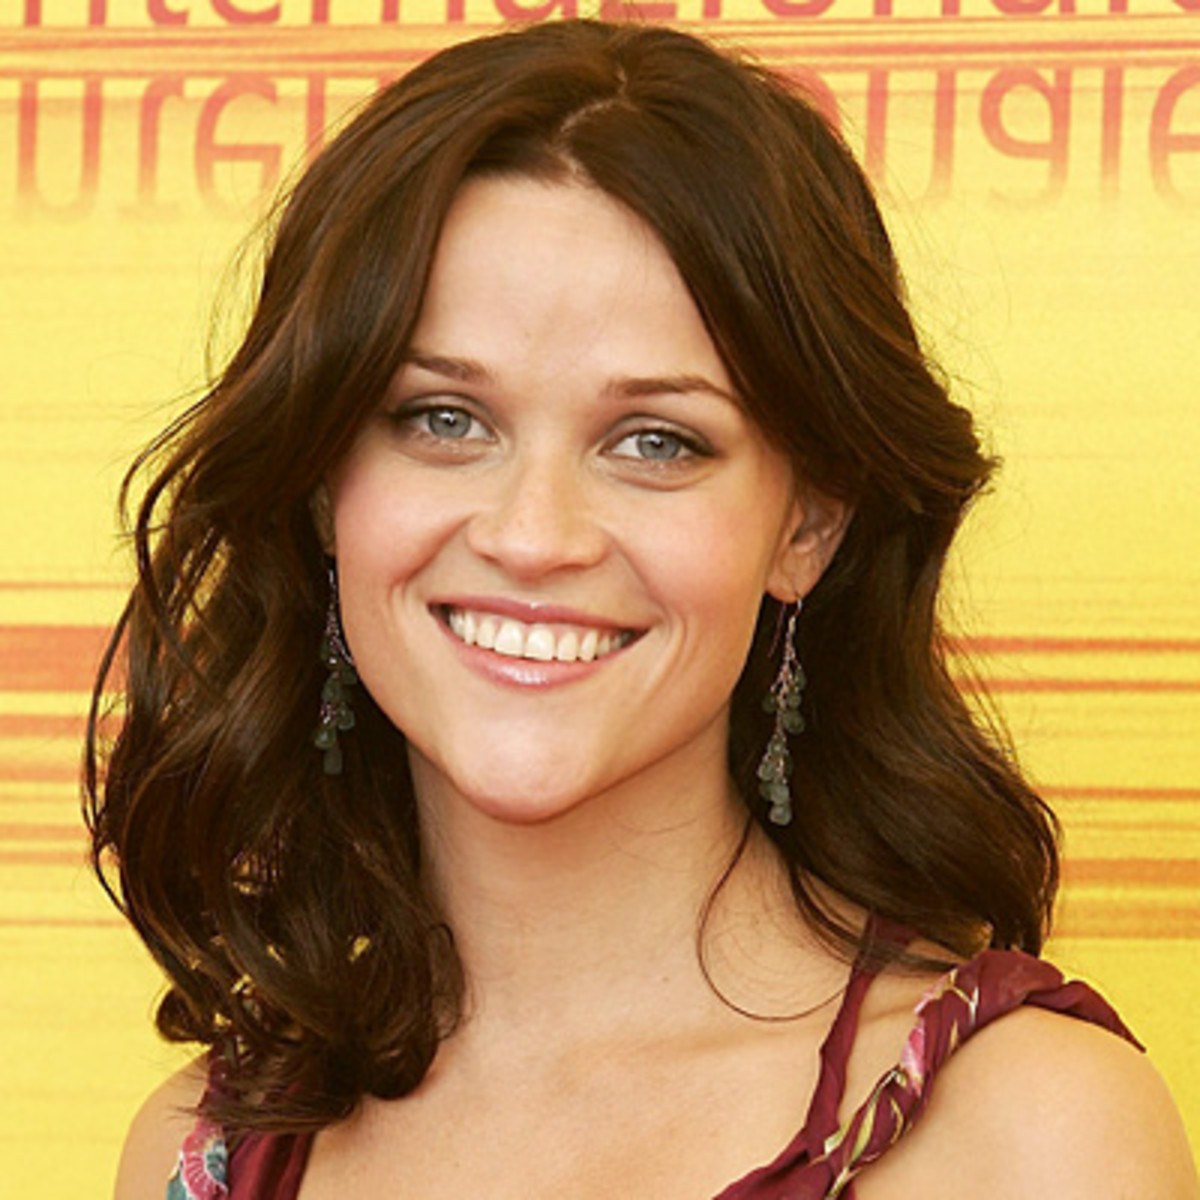 Reese Witherspoon with Shoulder-length Tresses in a Chocolate Brown Hair Color.